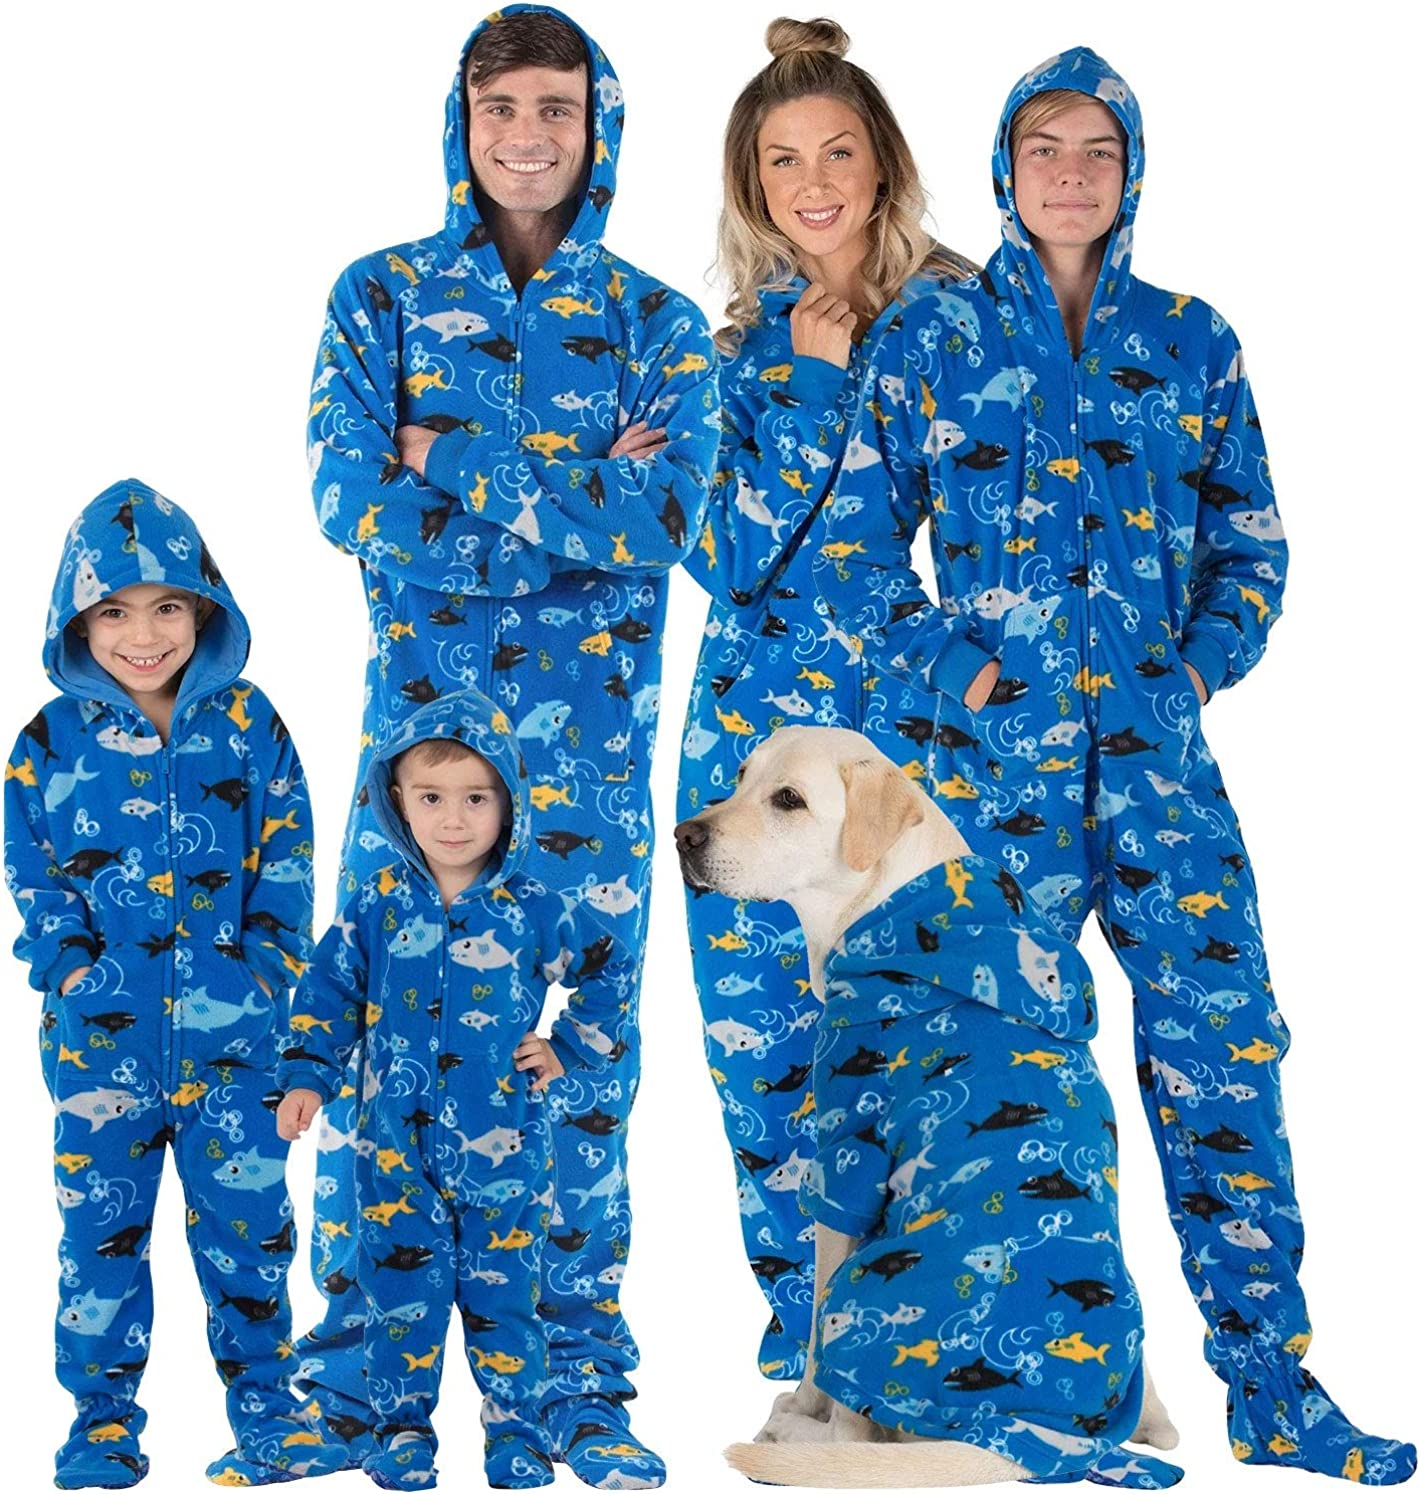 Footed Pajamas - Family Matching Hoodie Onesies   One Piece Boys, Girls, Men, Women Pjs and Pets Sweaters   Unisex